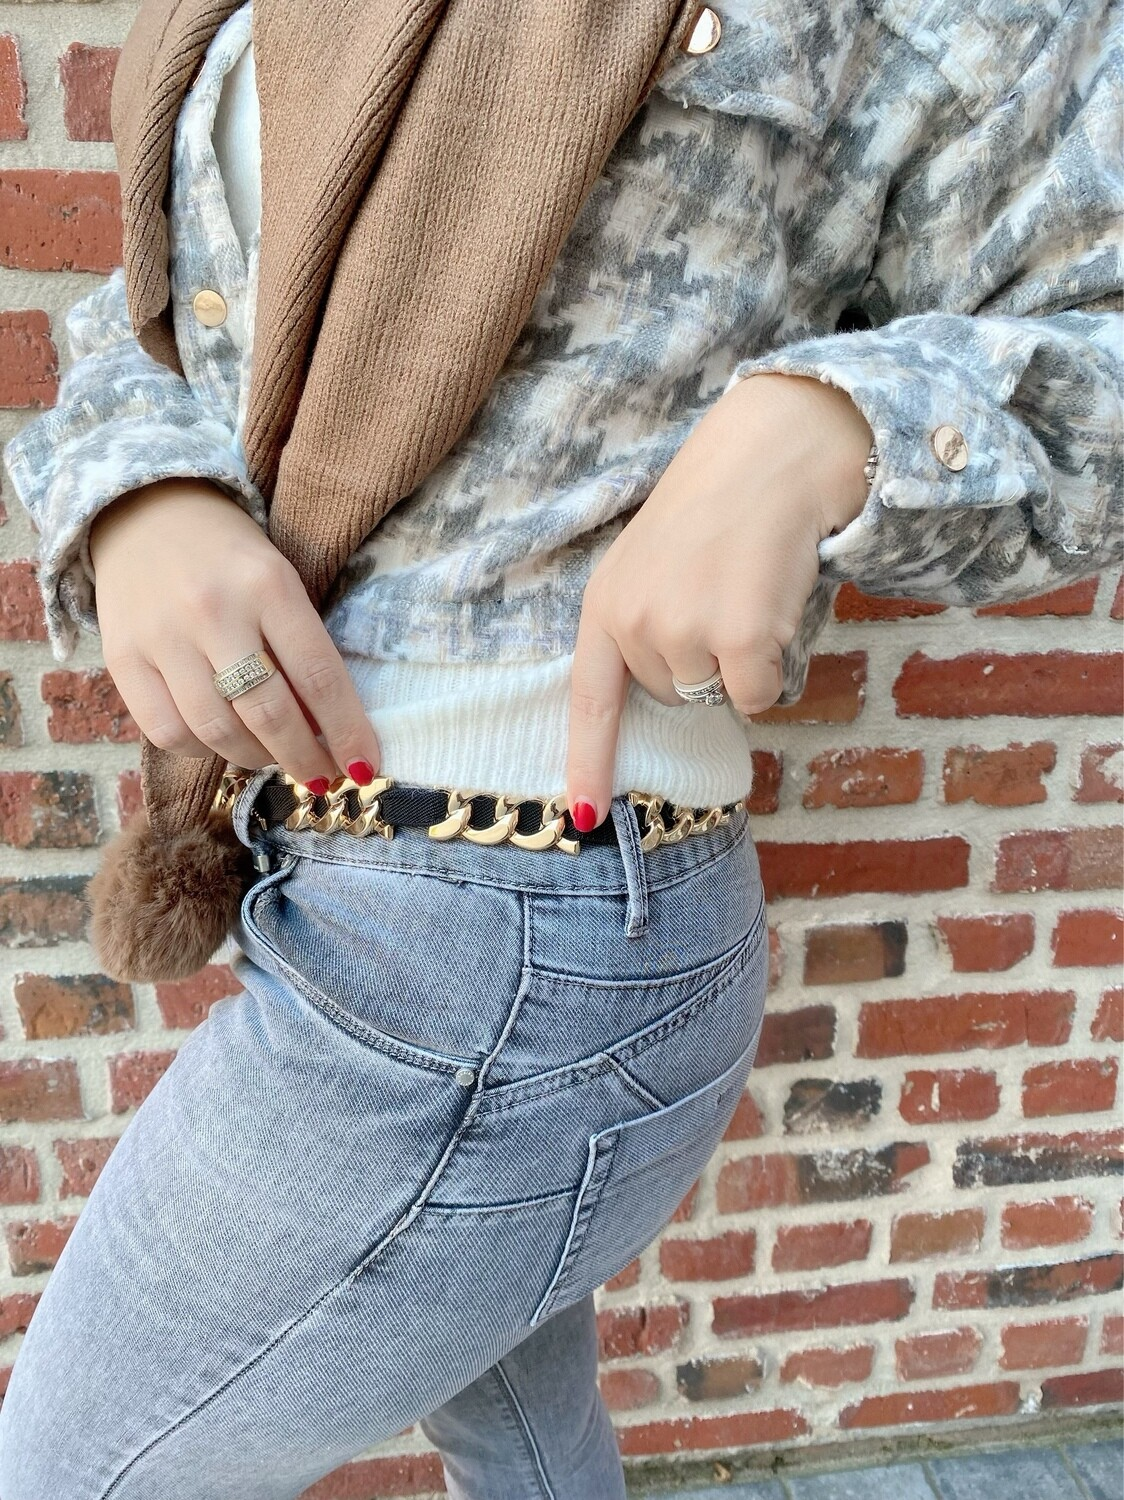 C-style chained riem